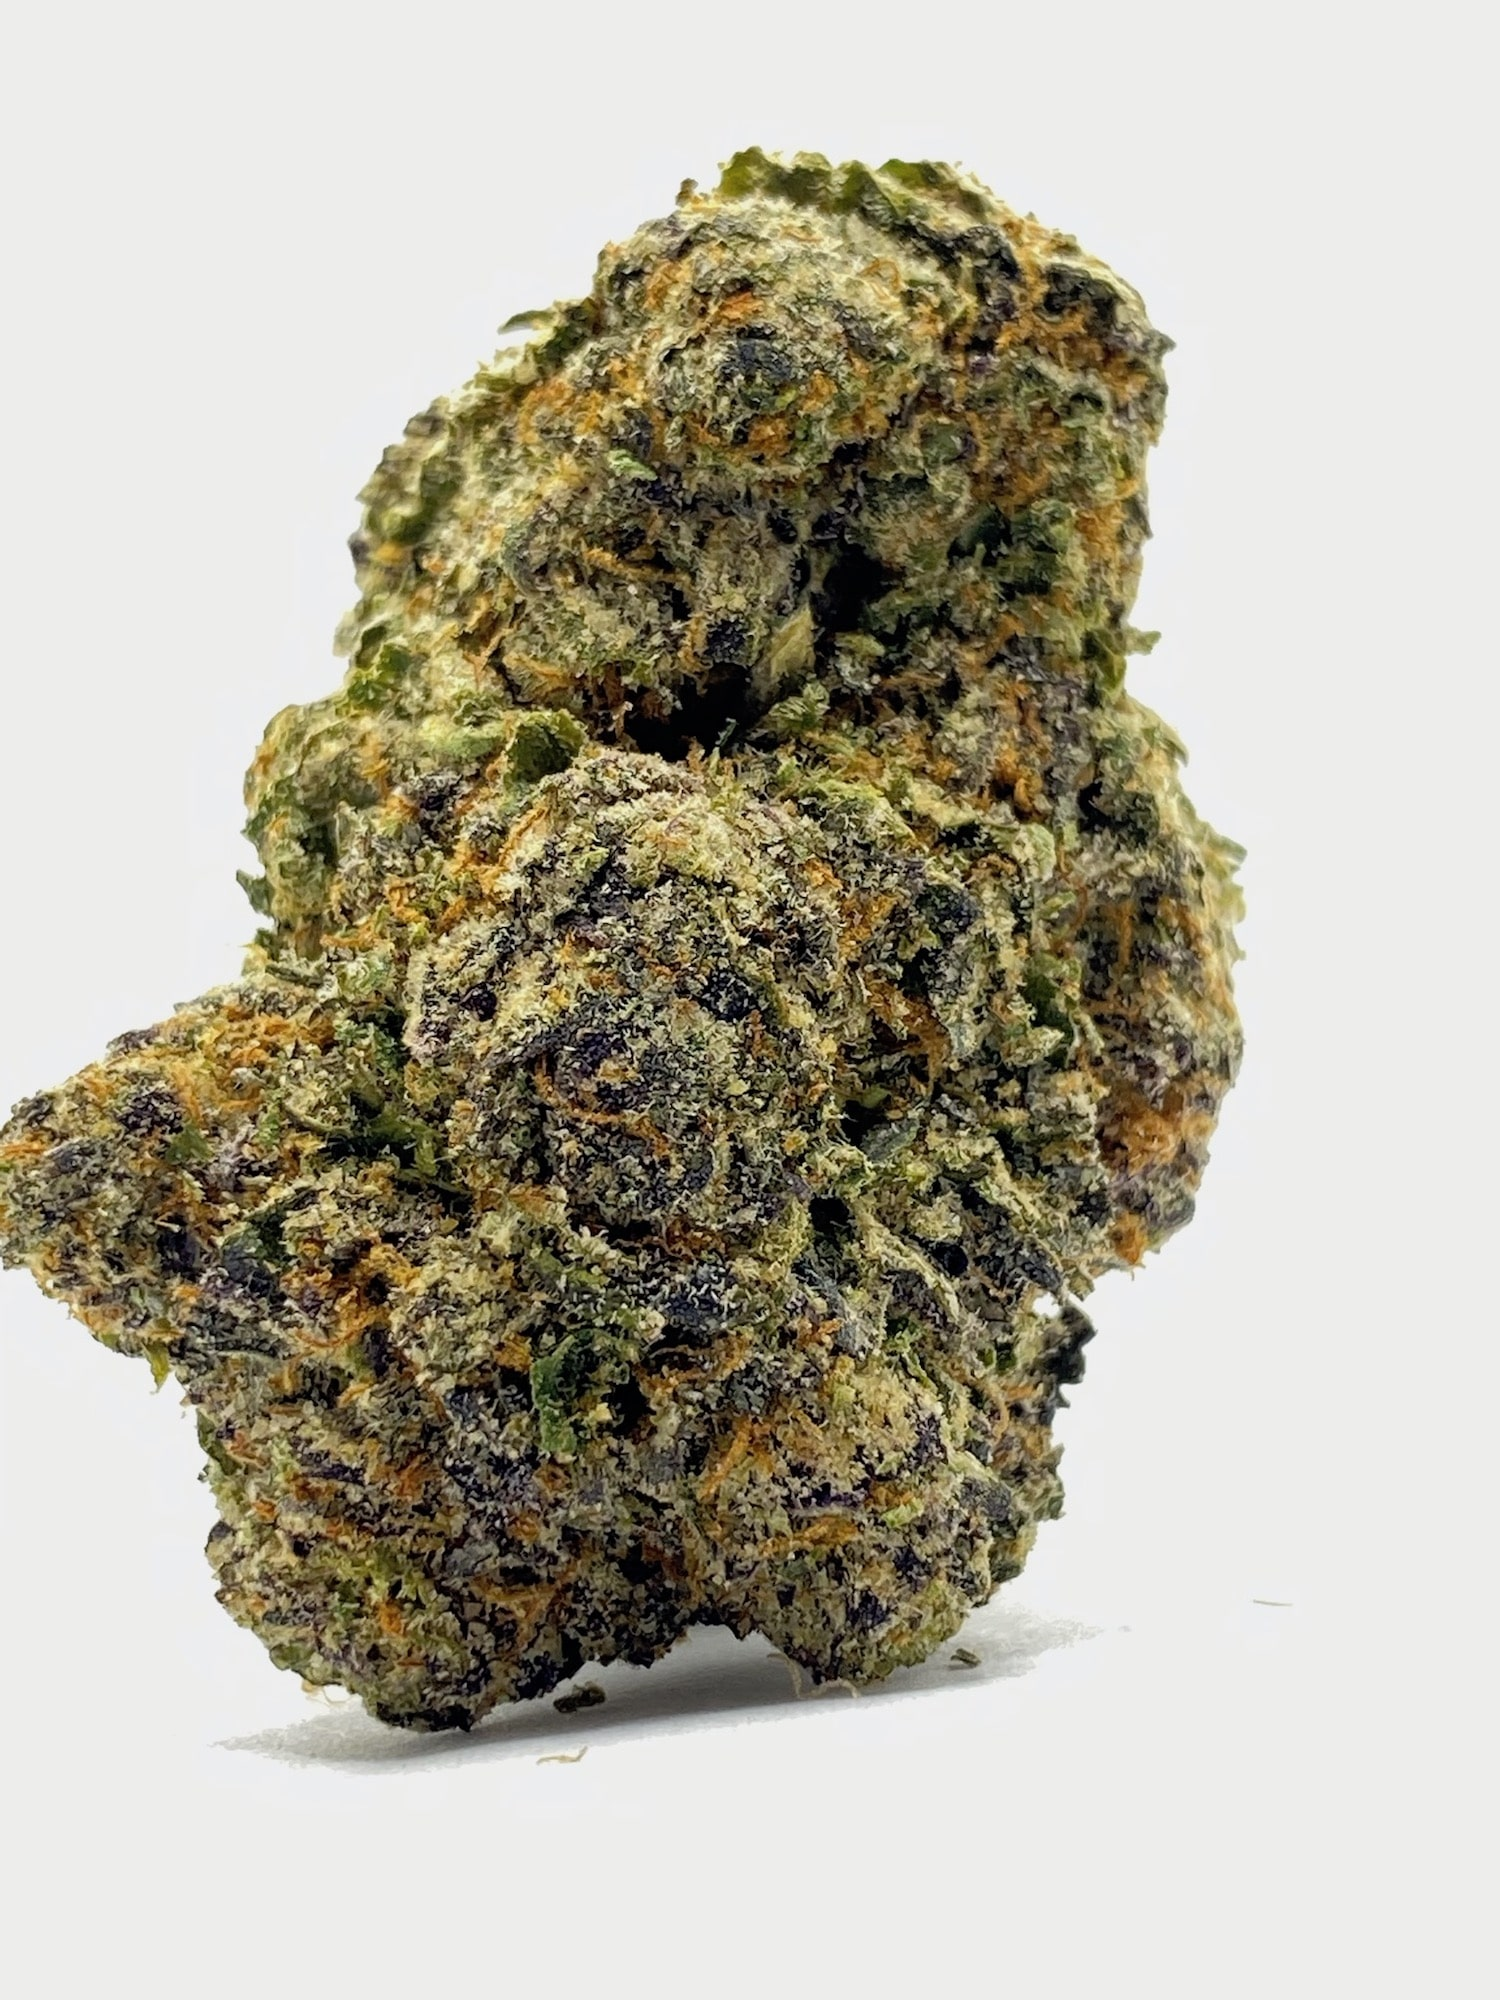 select co op dc fruity pebbles weed photo 4/2/21